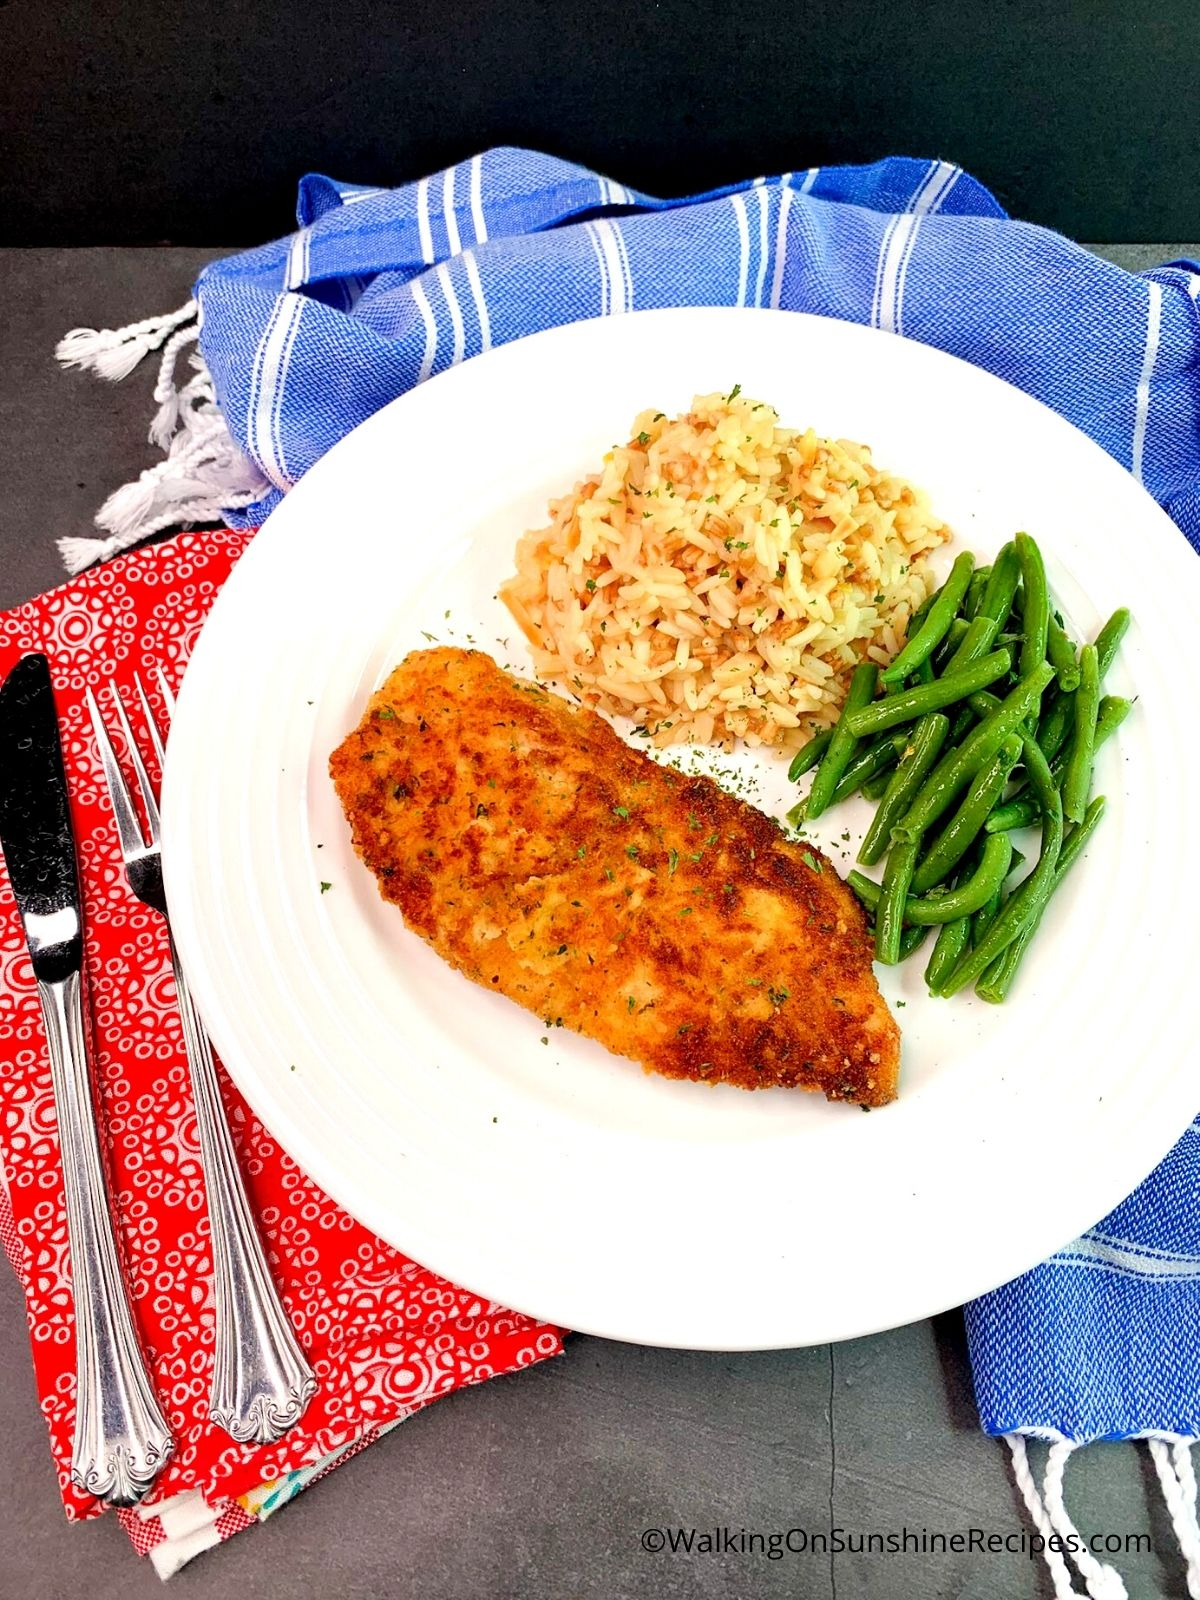 Breaded Chicken Cutlets on white plate with rice pilaf and steamed green beans.